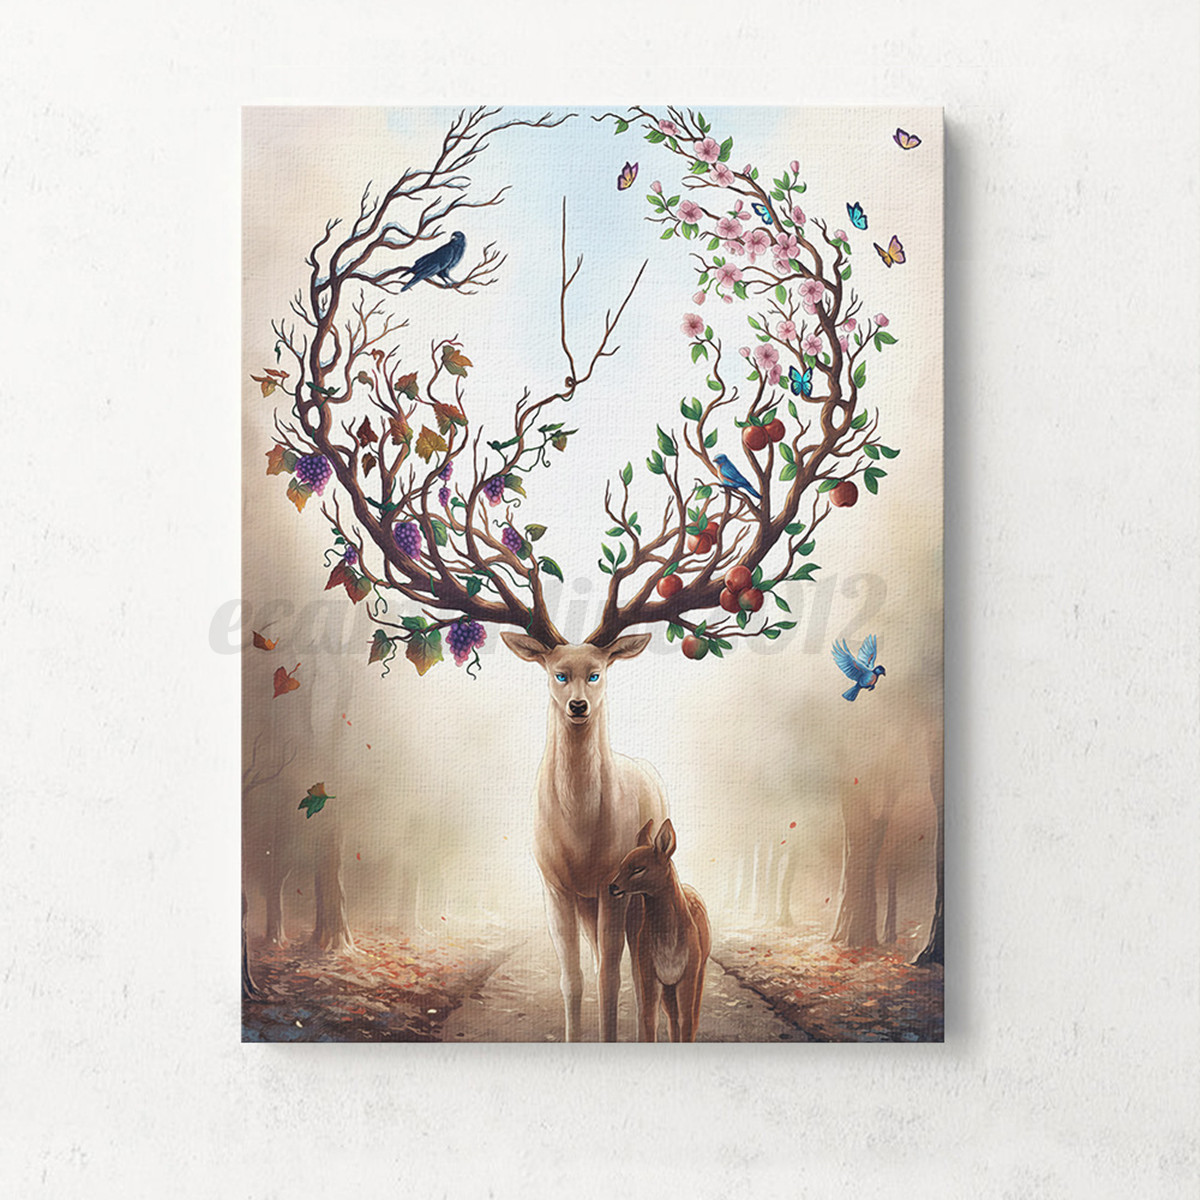 Home Decor Wall Art Unframed Canvas Print Deer Design Modern Home Decor Wall Art